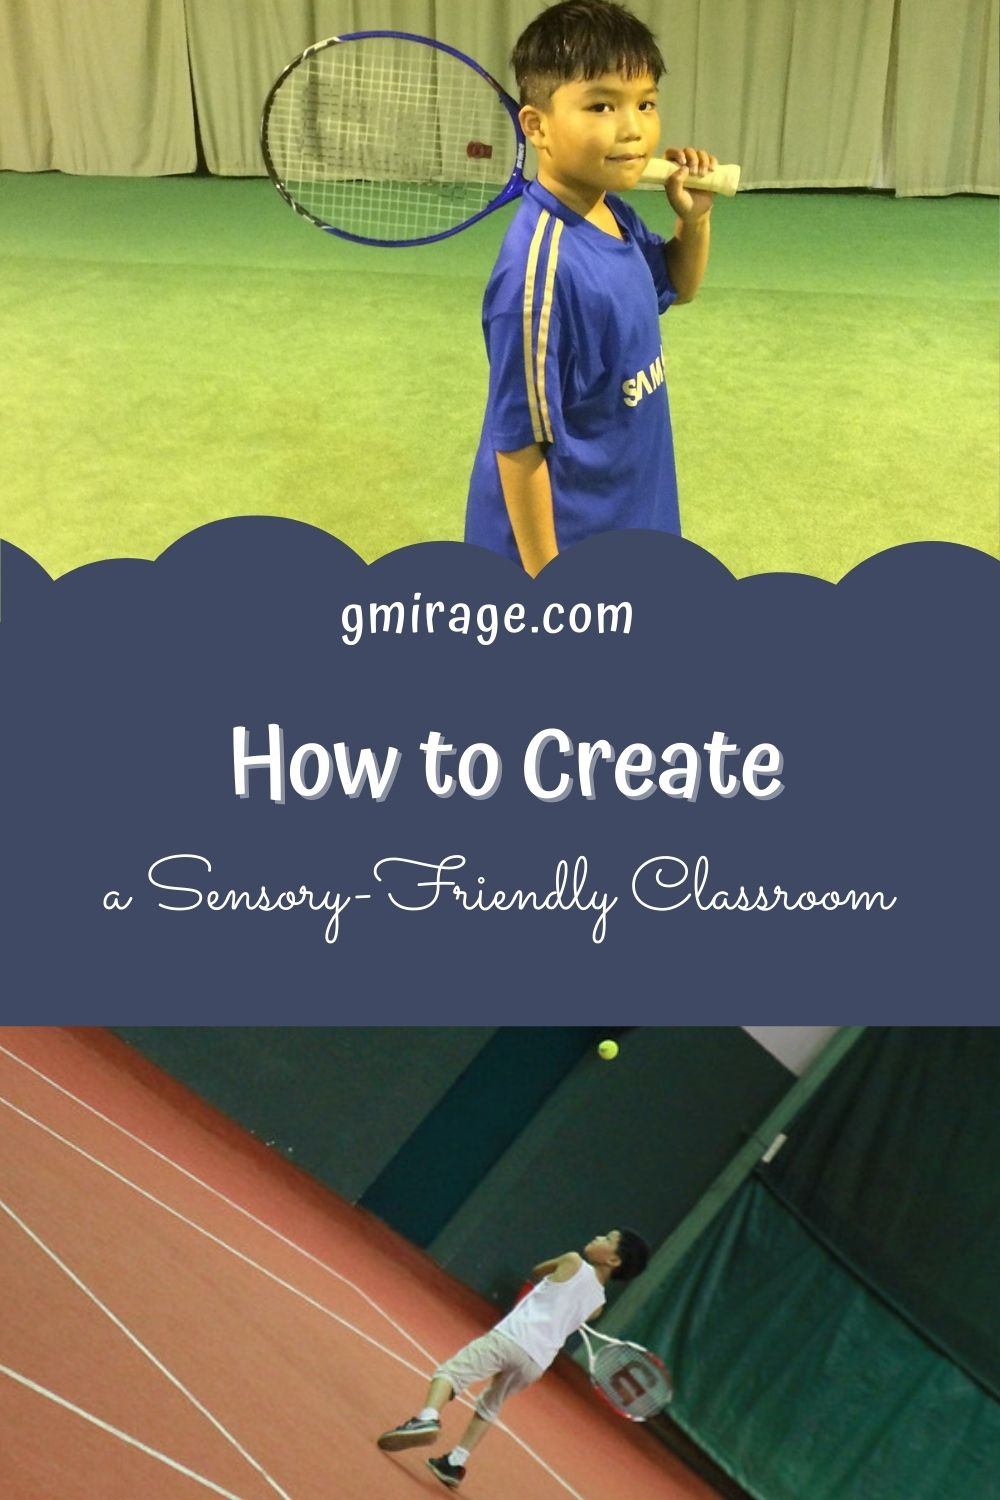 tennis kids, 13 Best Ways on How to Create a Sensory-Friendly Classroom